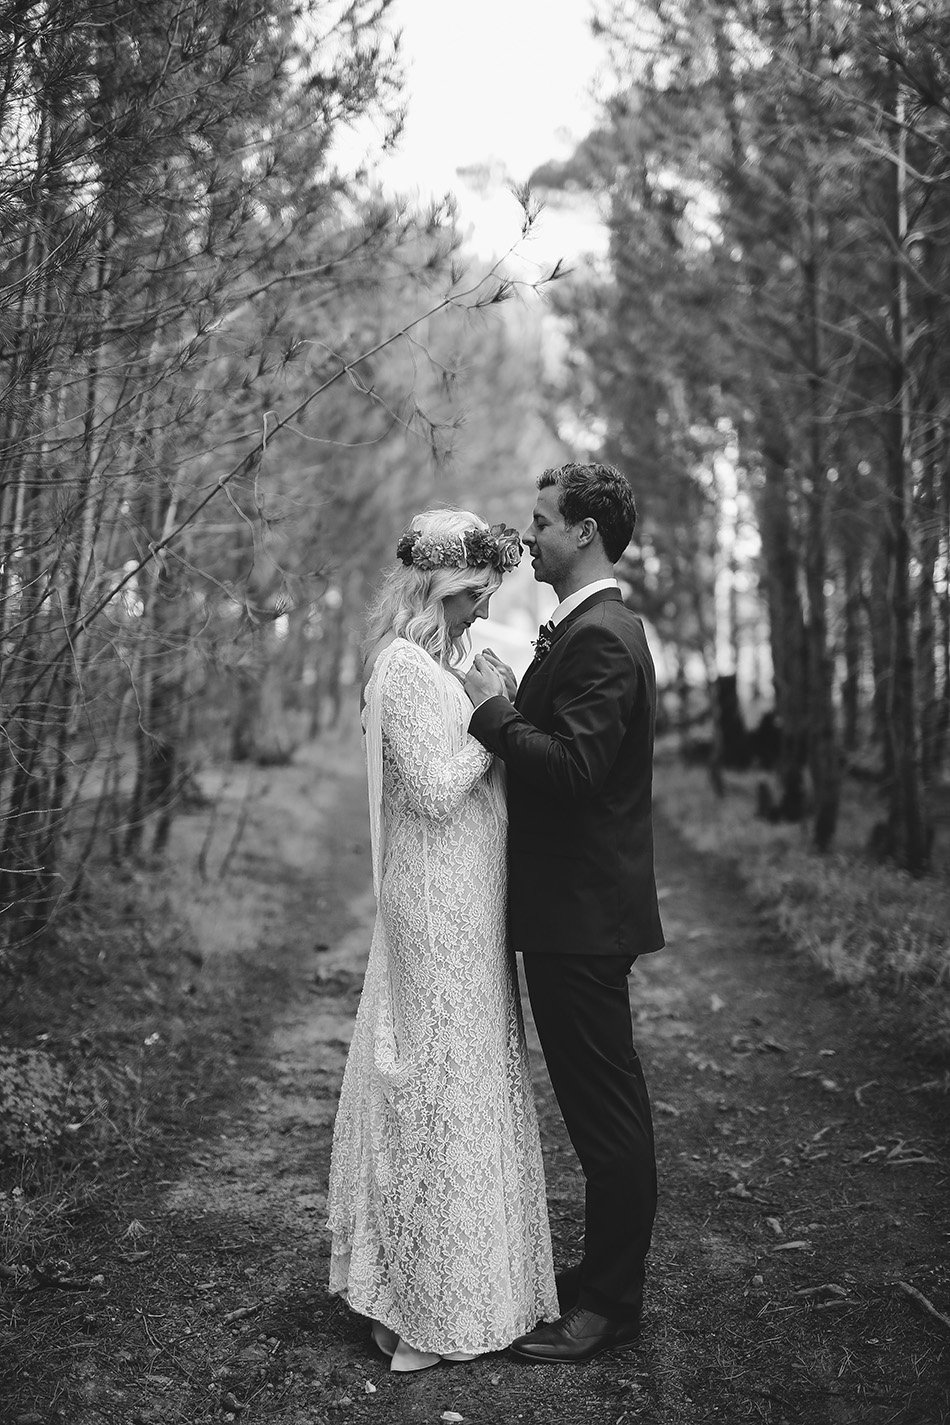 Nadia&Charl {Married@Winery Road Forest, R44}-1483